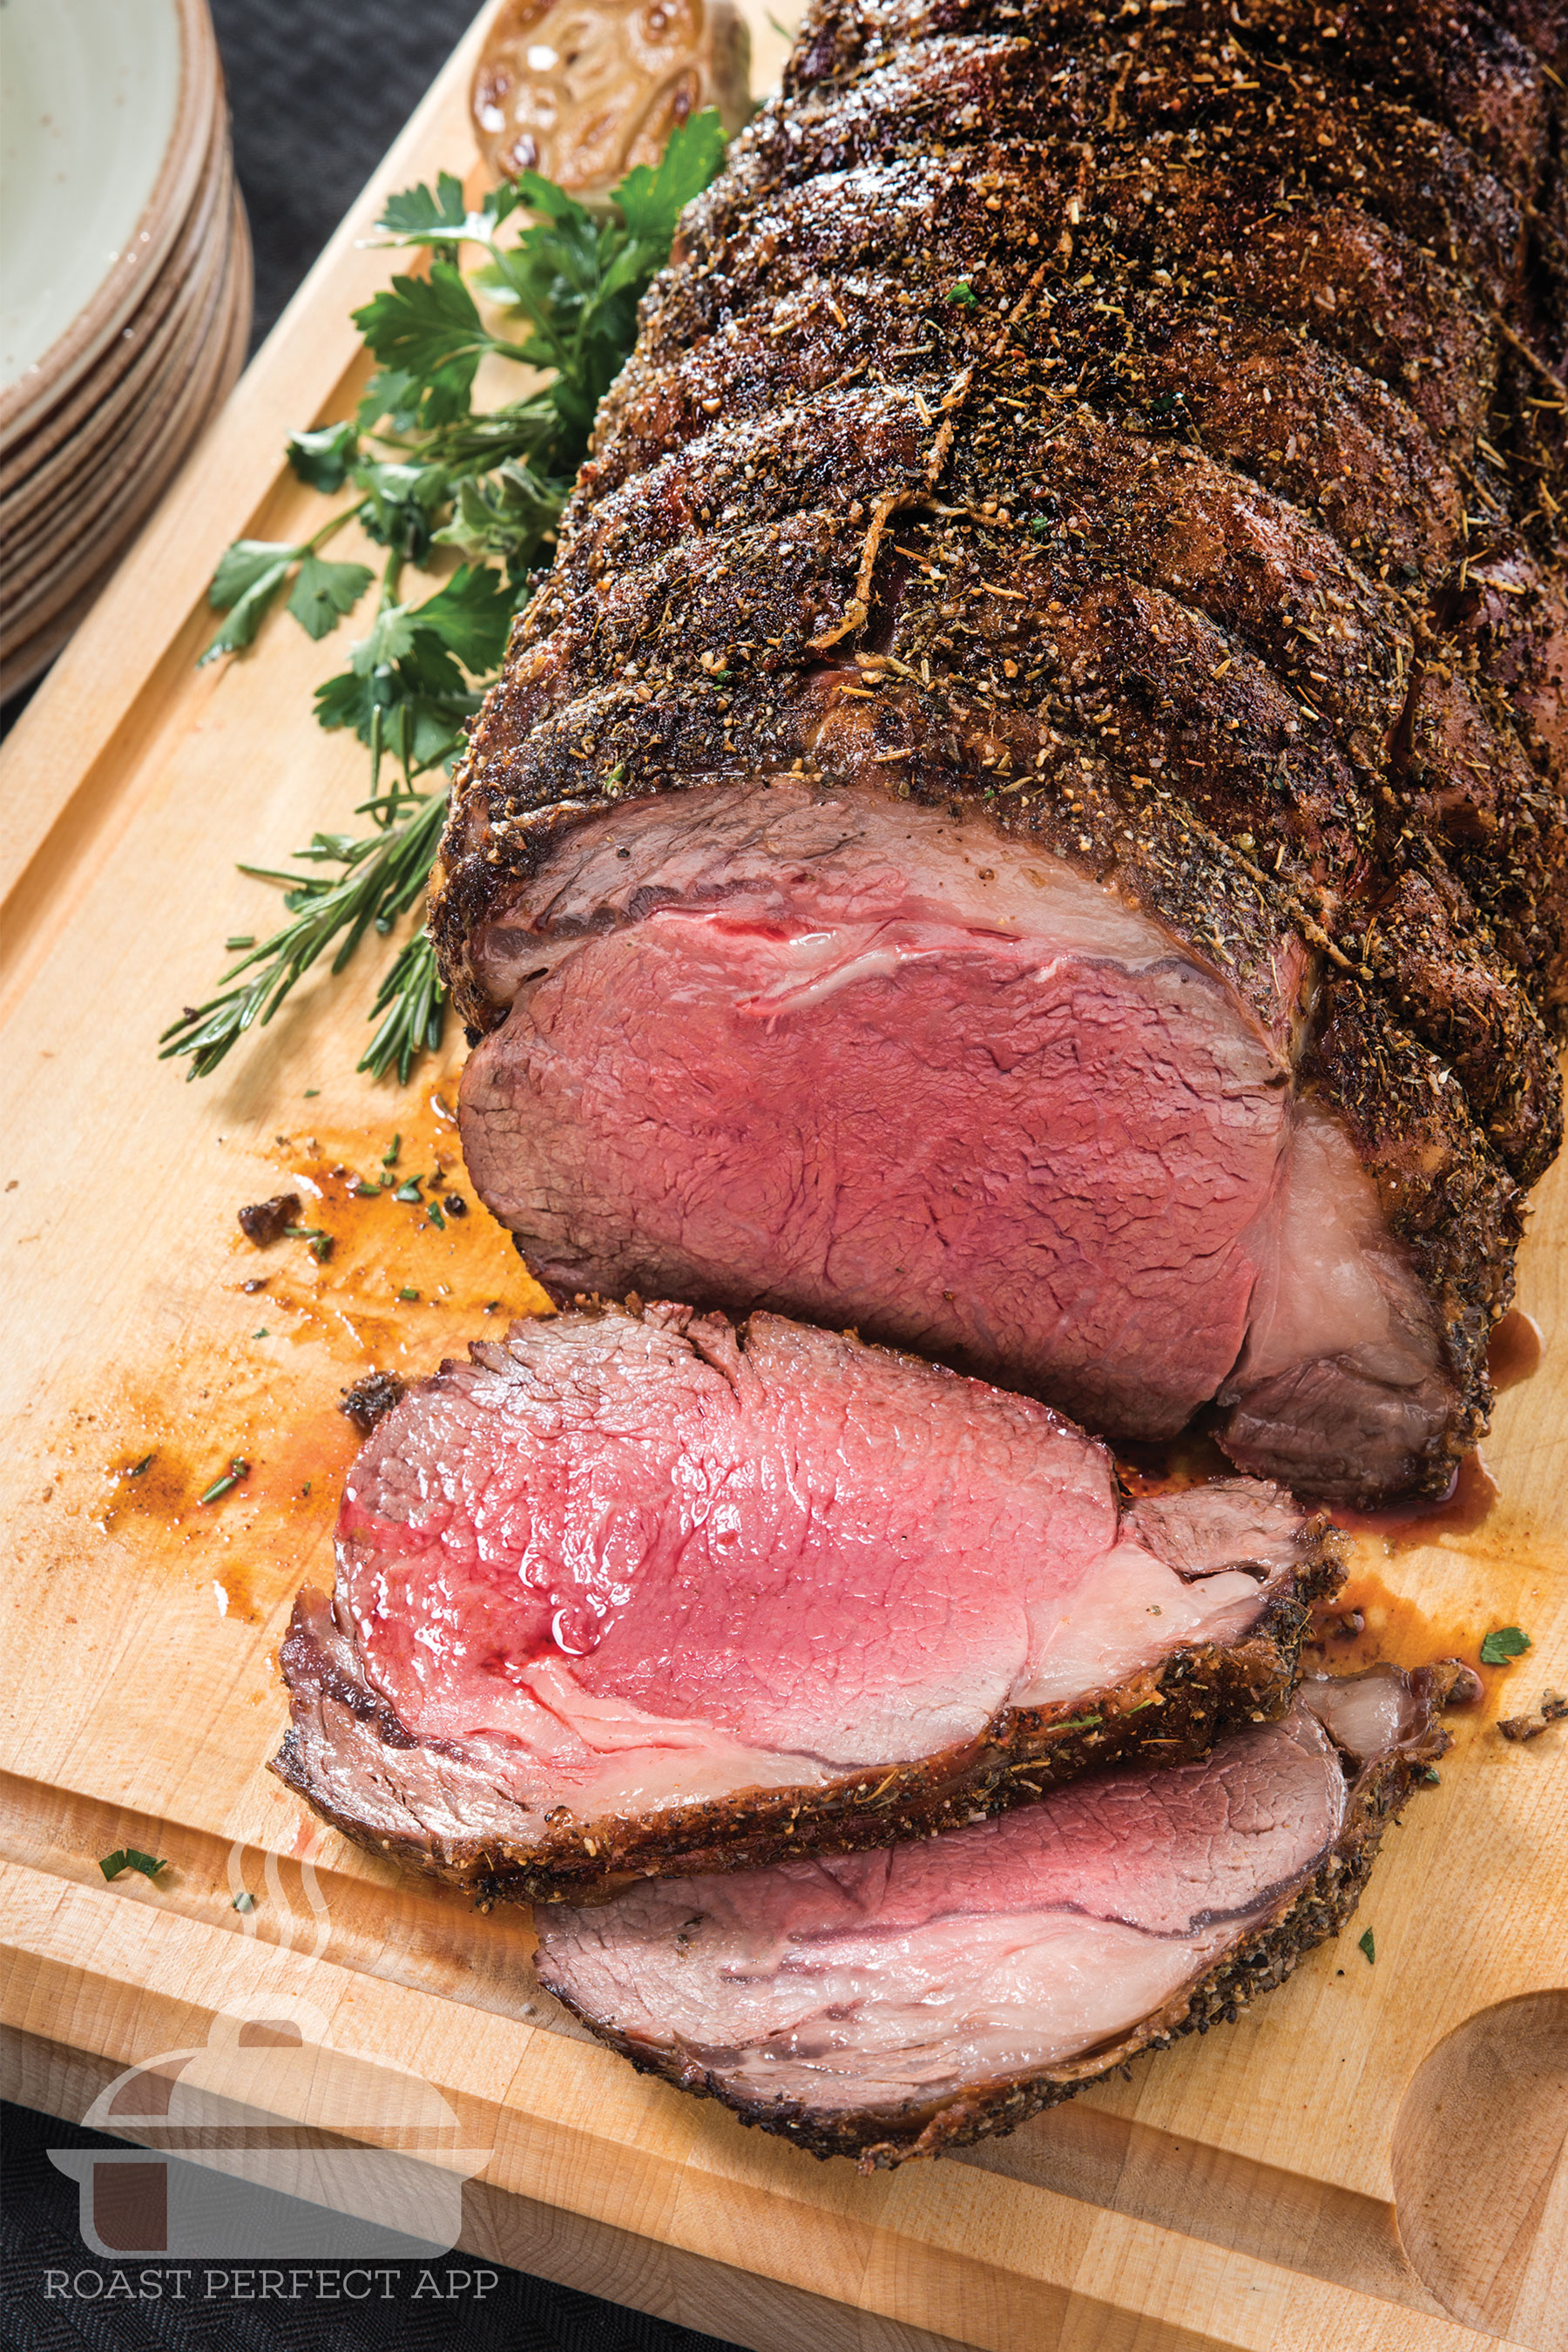 Download the Roast Perfect app today, for sensational holiday meals!